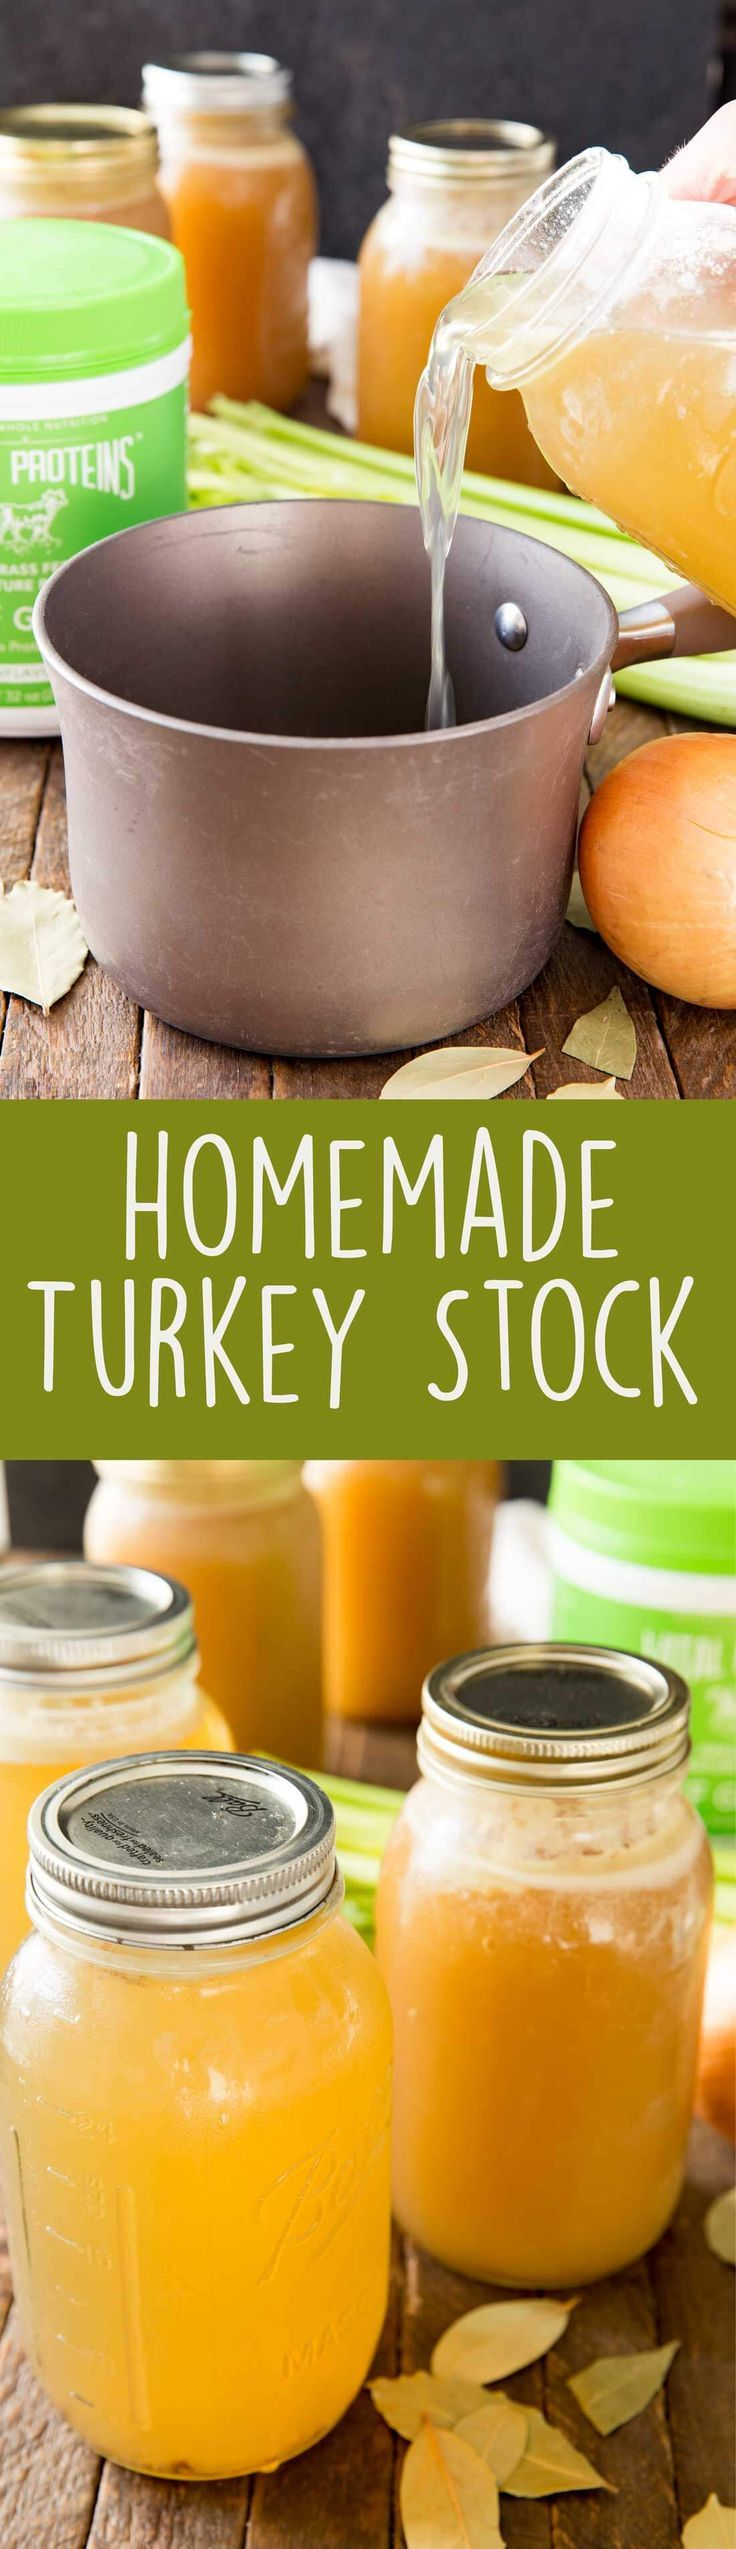 How to Make Homemade Turkey Stock and store it. It is healthy, delicious, and so easy to make in your crock pot! - Eazy Peazy Mealz #ad